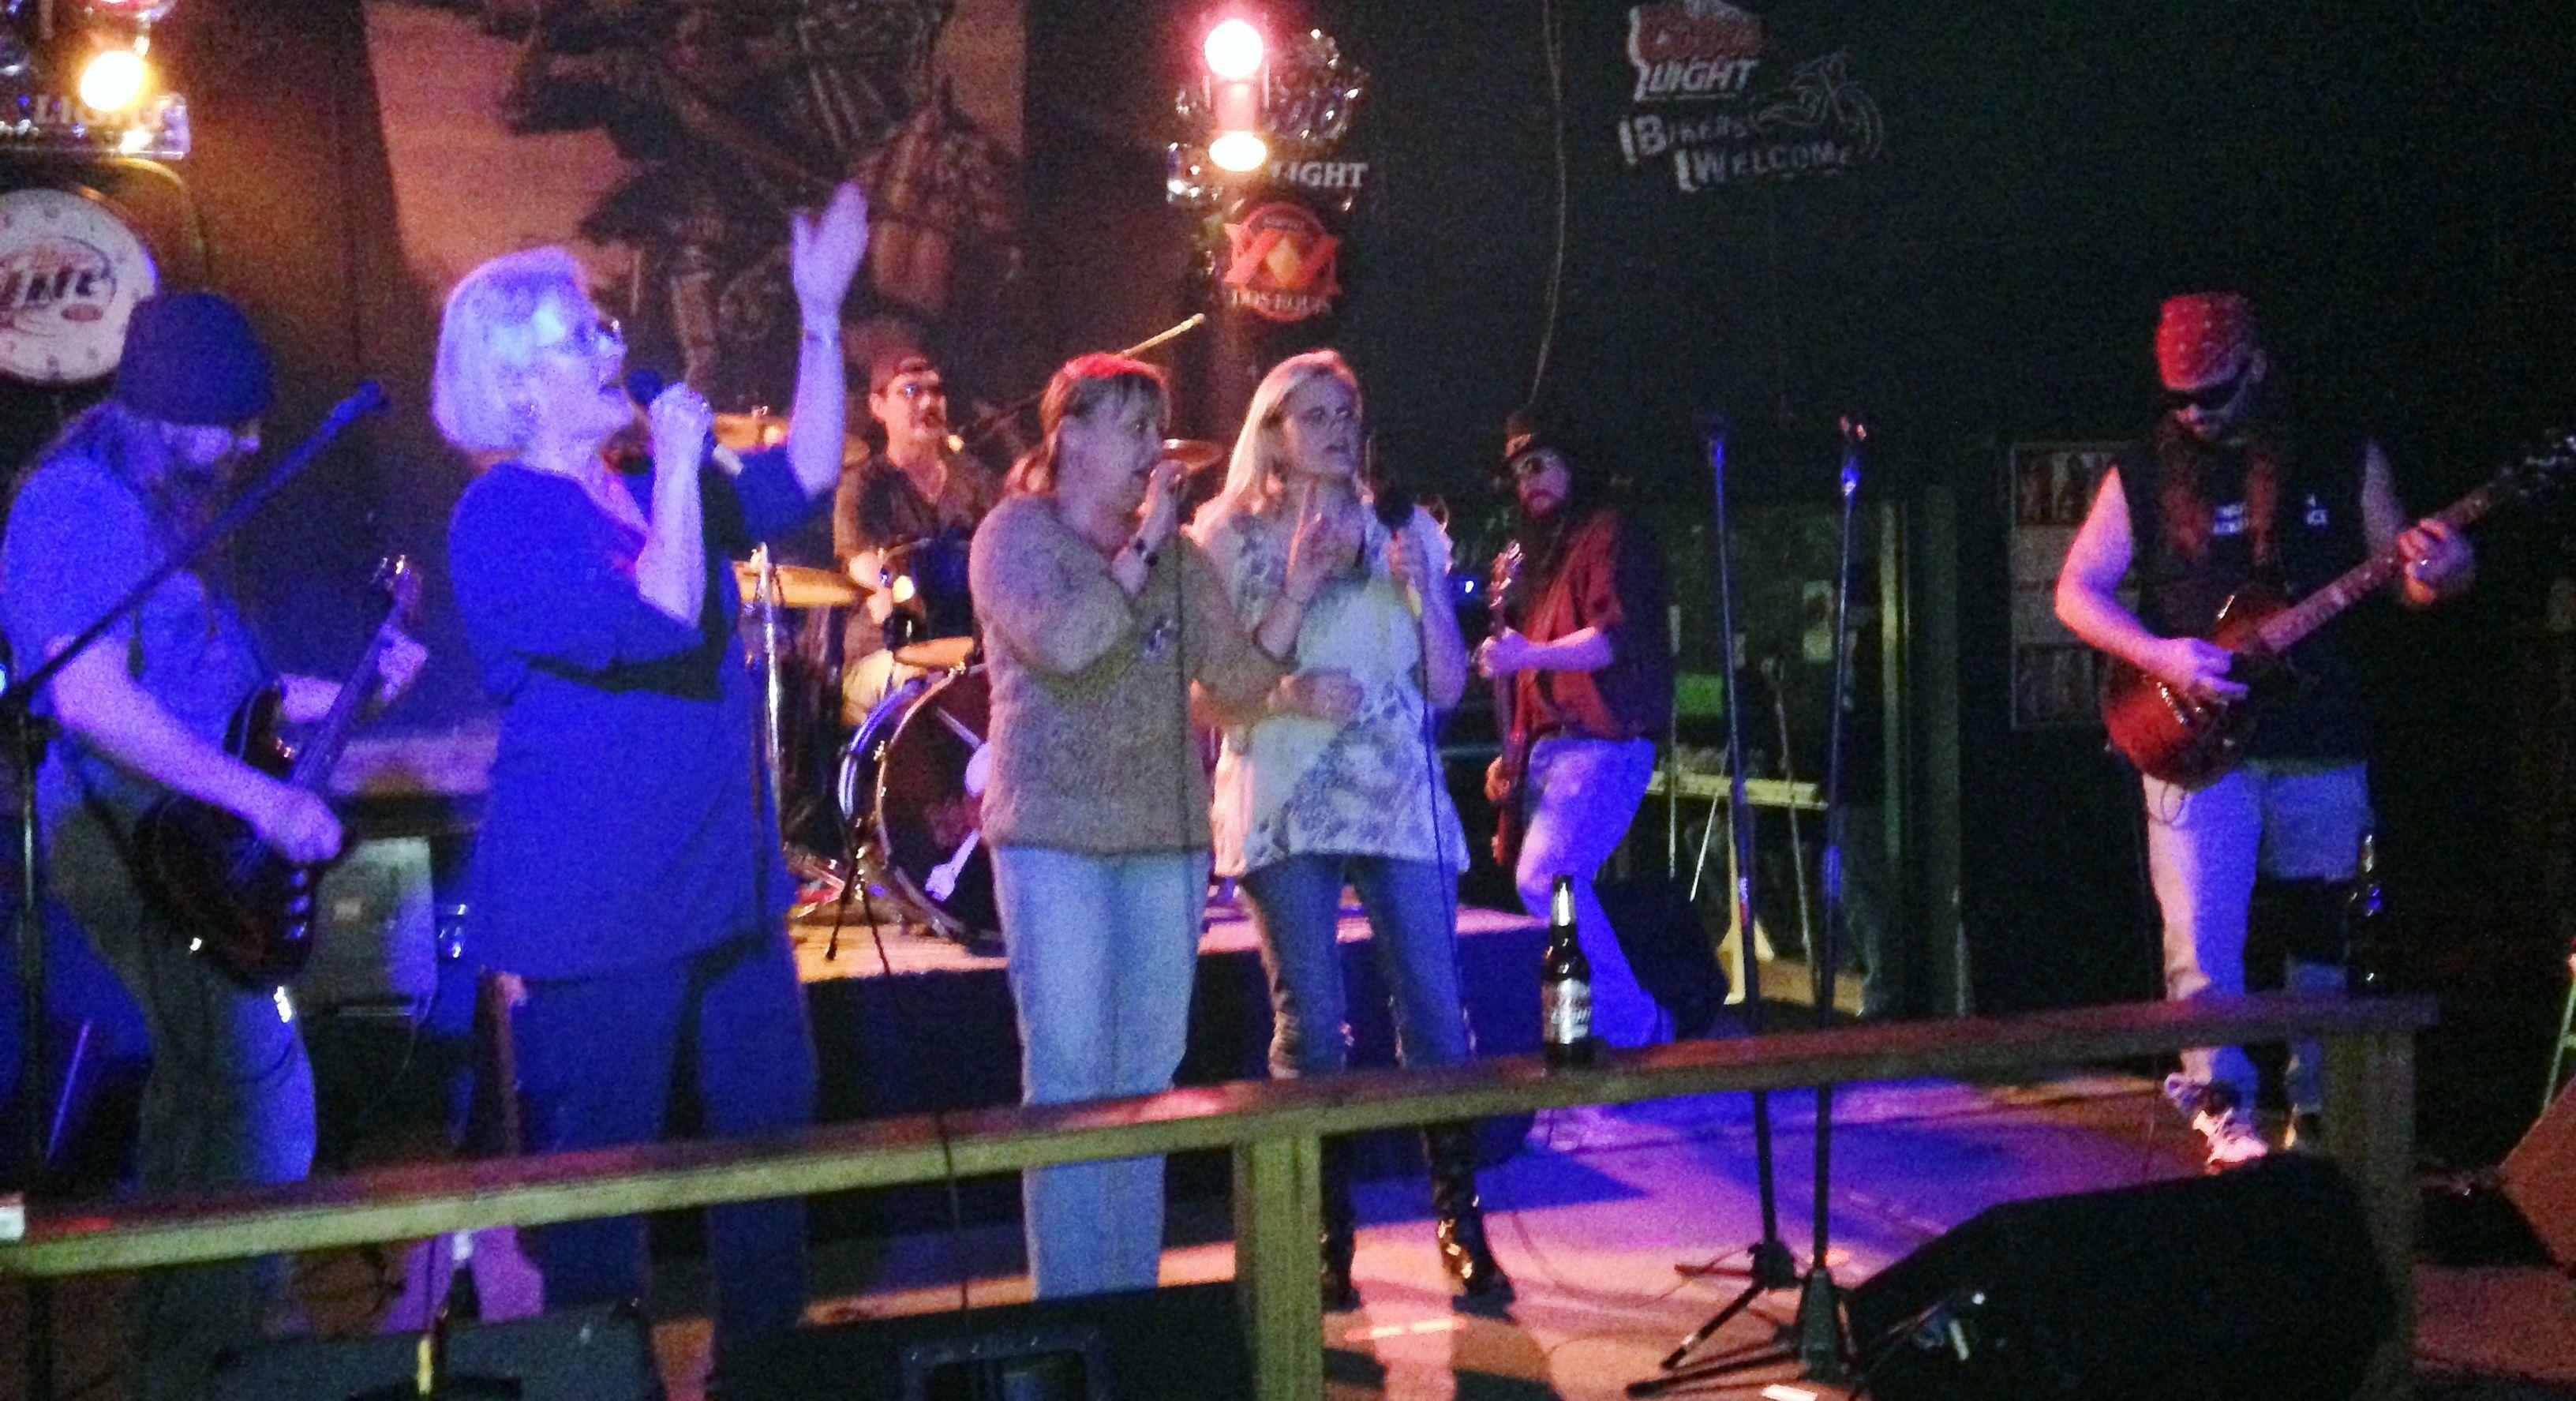 Karaoke at The Hideout in North Richland Hills